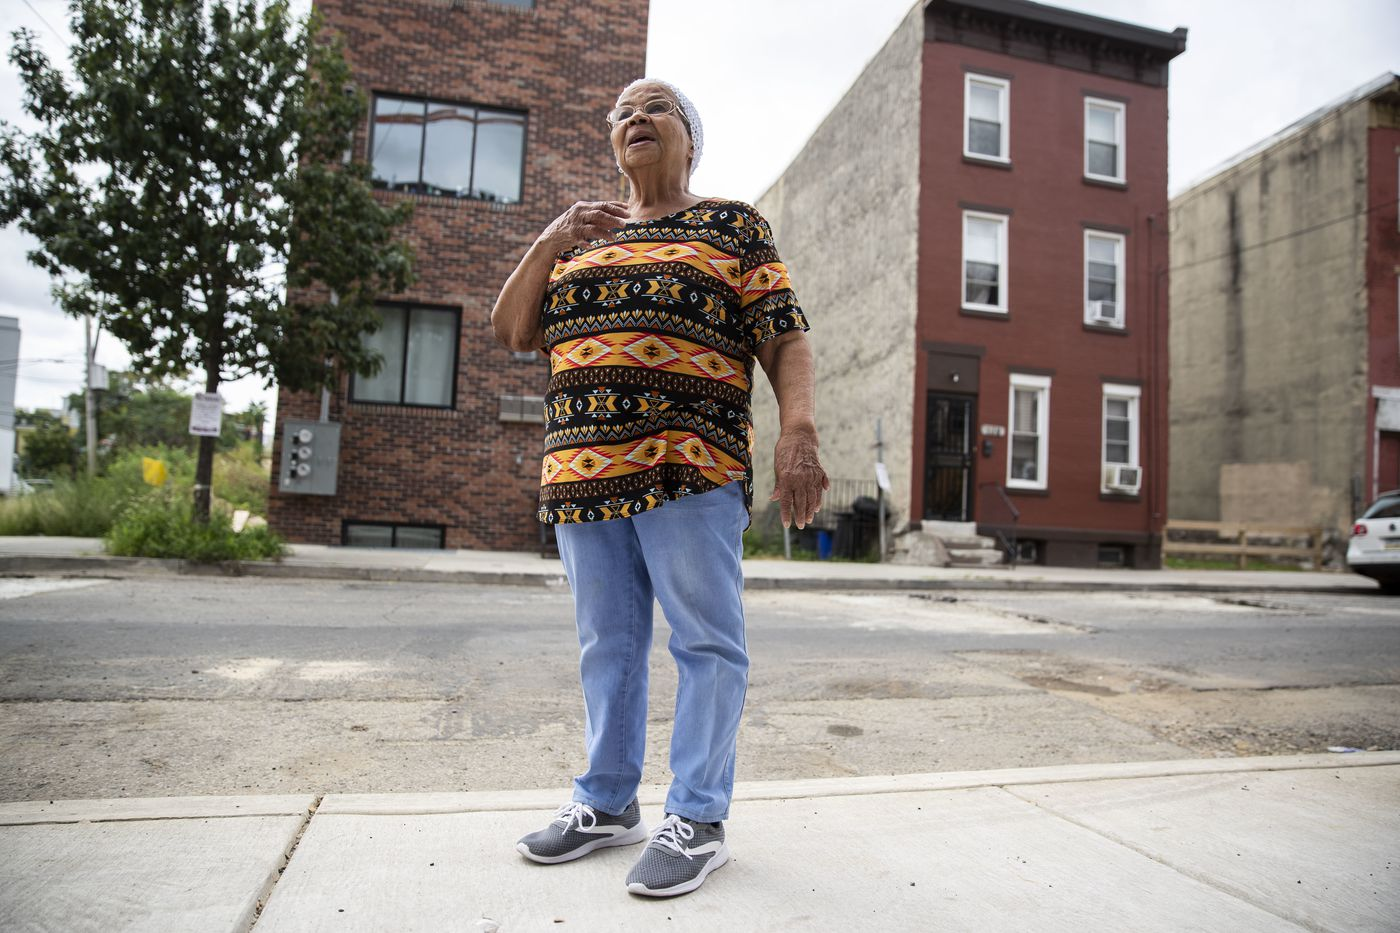 Petronila Cruz used to have a vast garden on six vacant lots surrounding her home in West Kensington. In 2019 the land was sold, and now a three-story apartment building stands there.